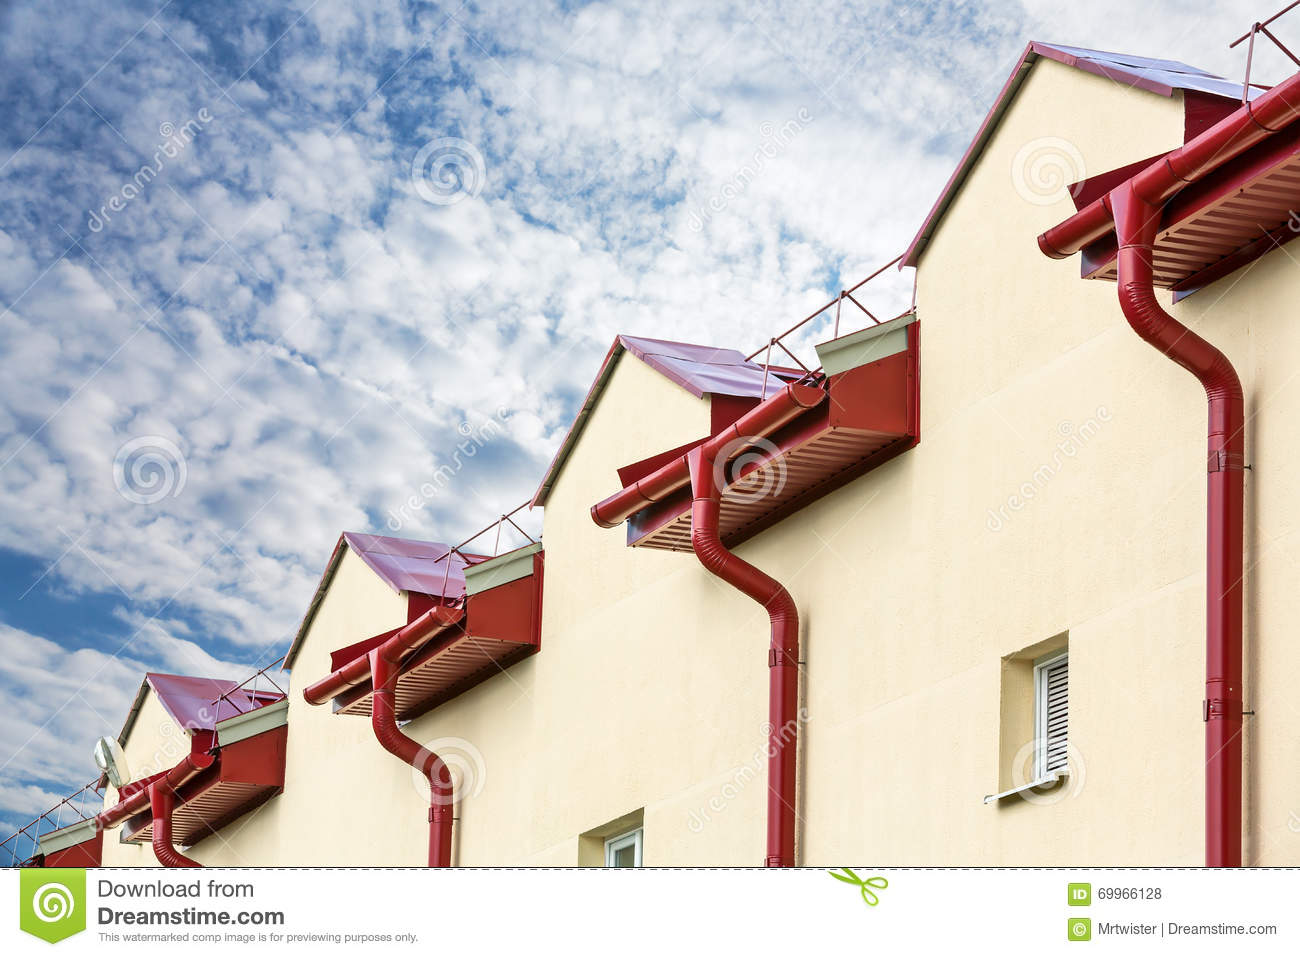 Gutter drainage system on the roof stock photo image for House roof drain pipes